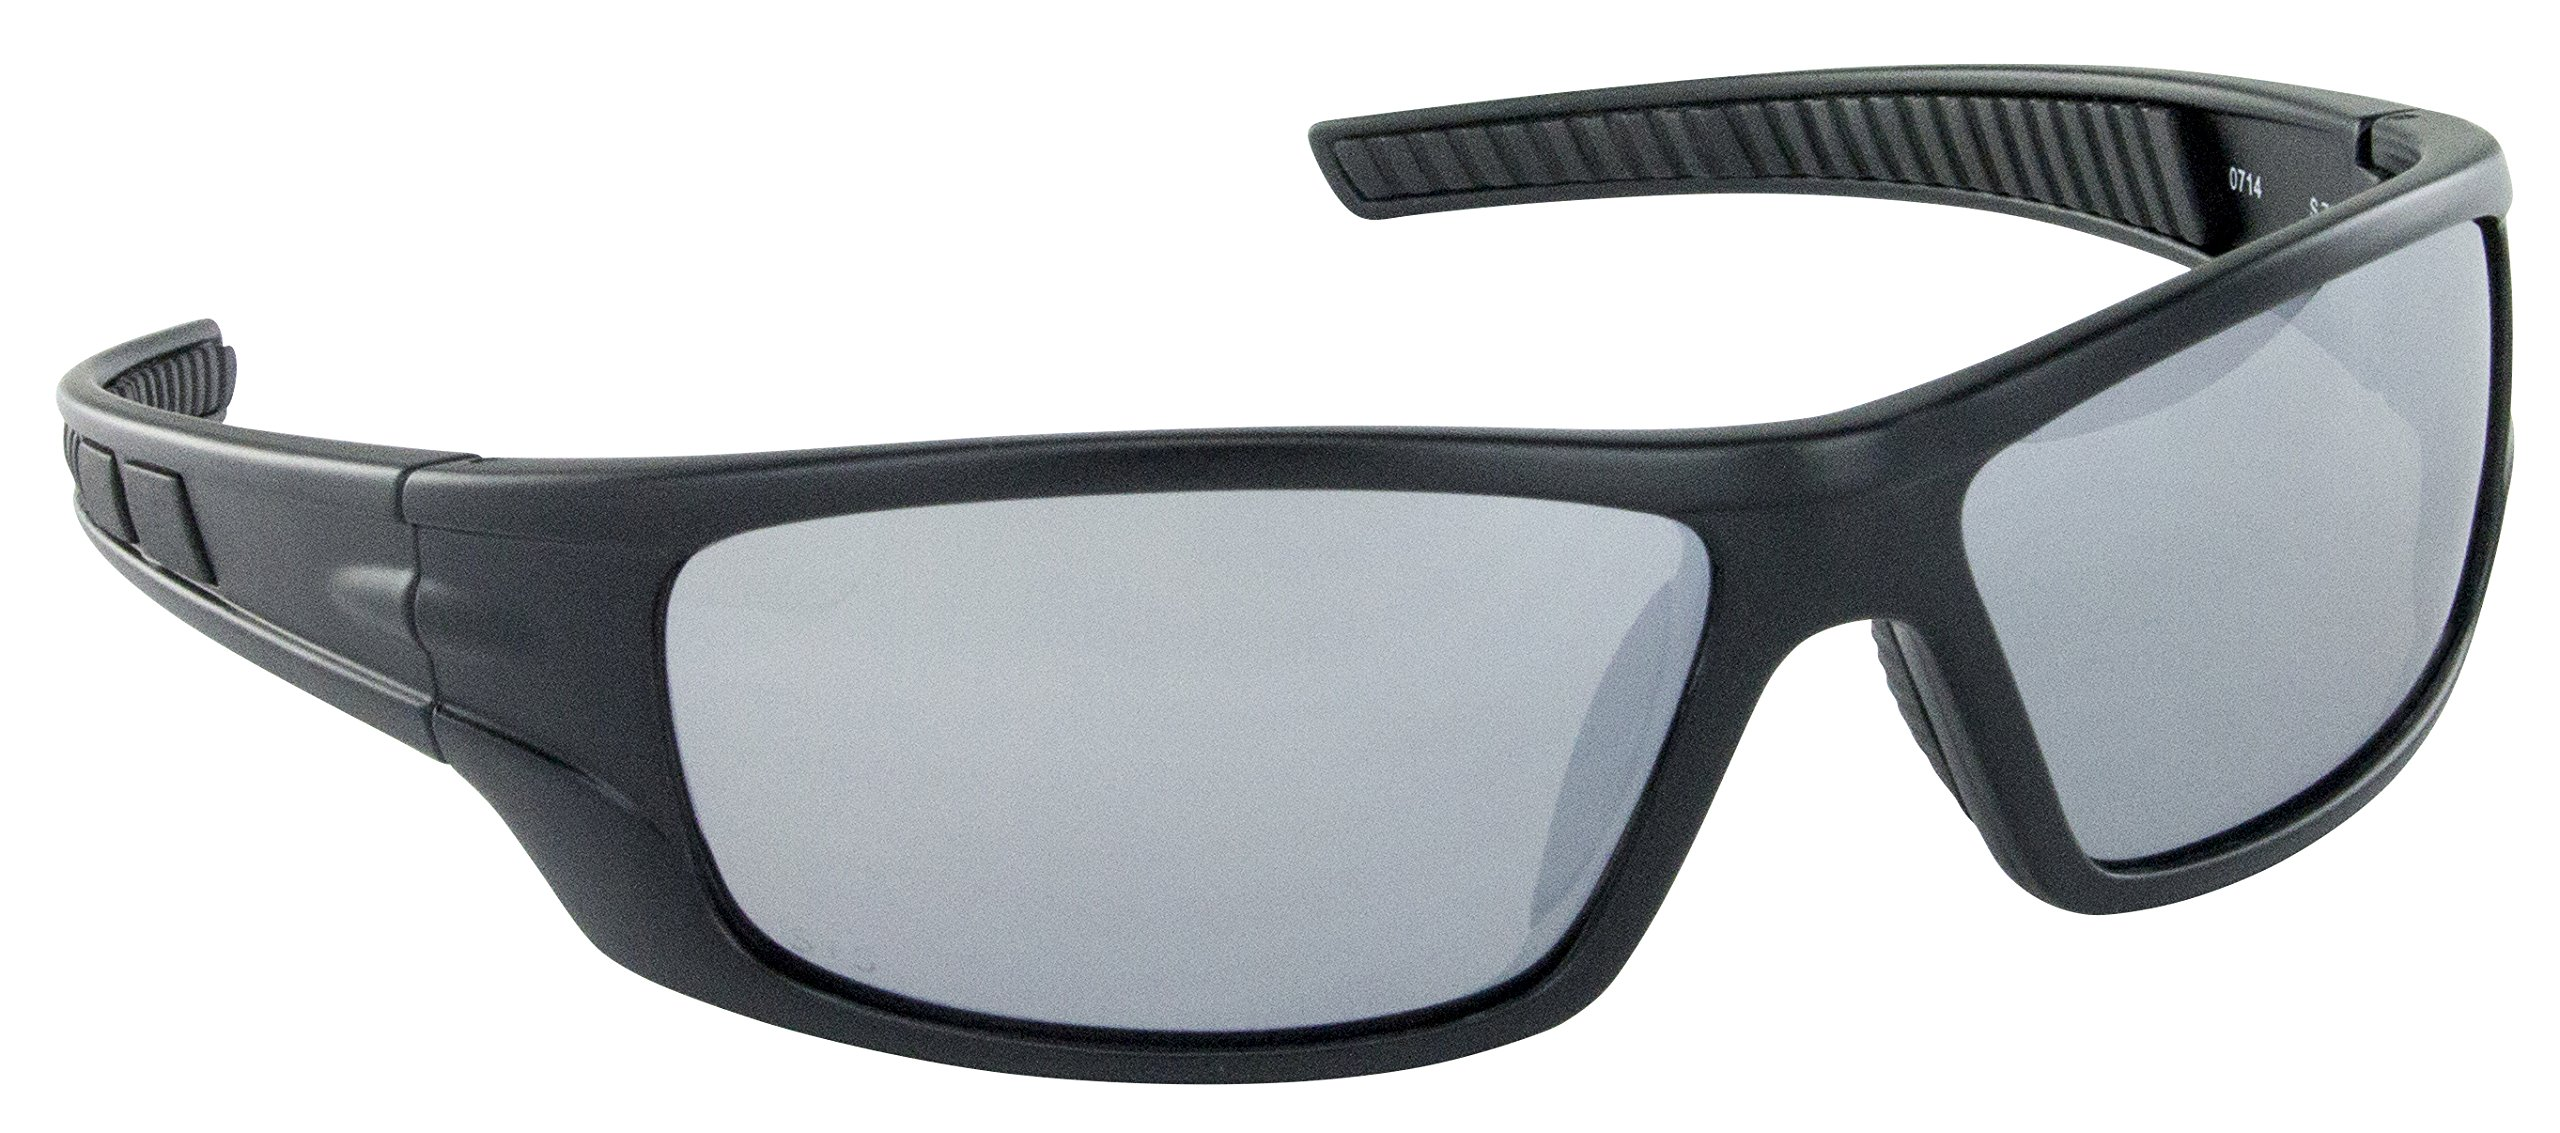 SAS Safety 5510-04 VX9 Safety Glasses with Mirror Lens, Black by SAS Safety